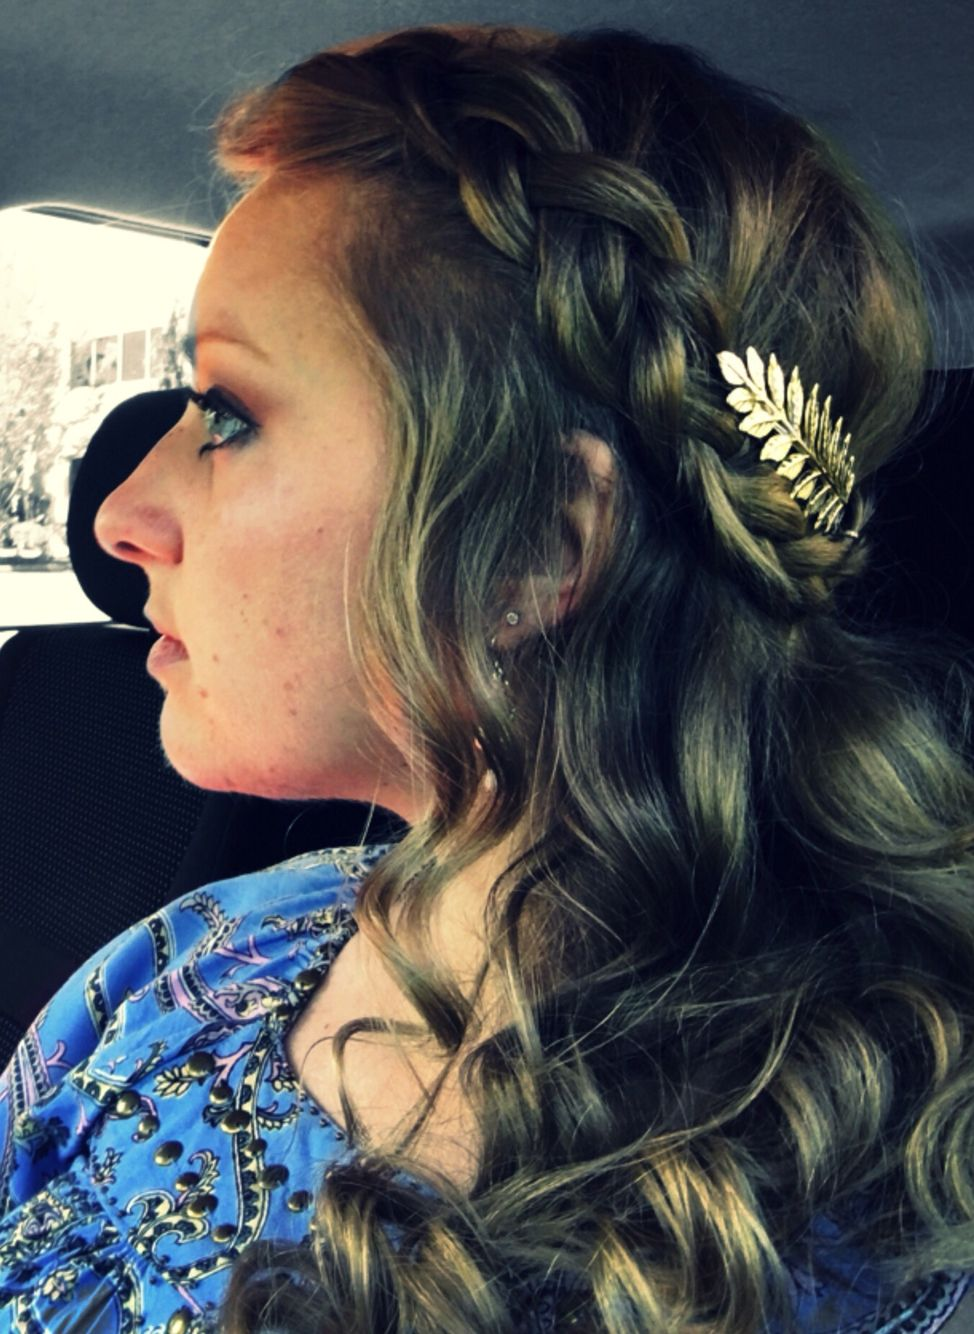 Grecian hairstyle. Gold leaf barrette. Braid and curls. Easy updo for work. Medium-long length hairstyle.